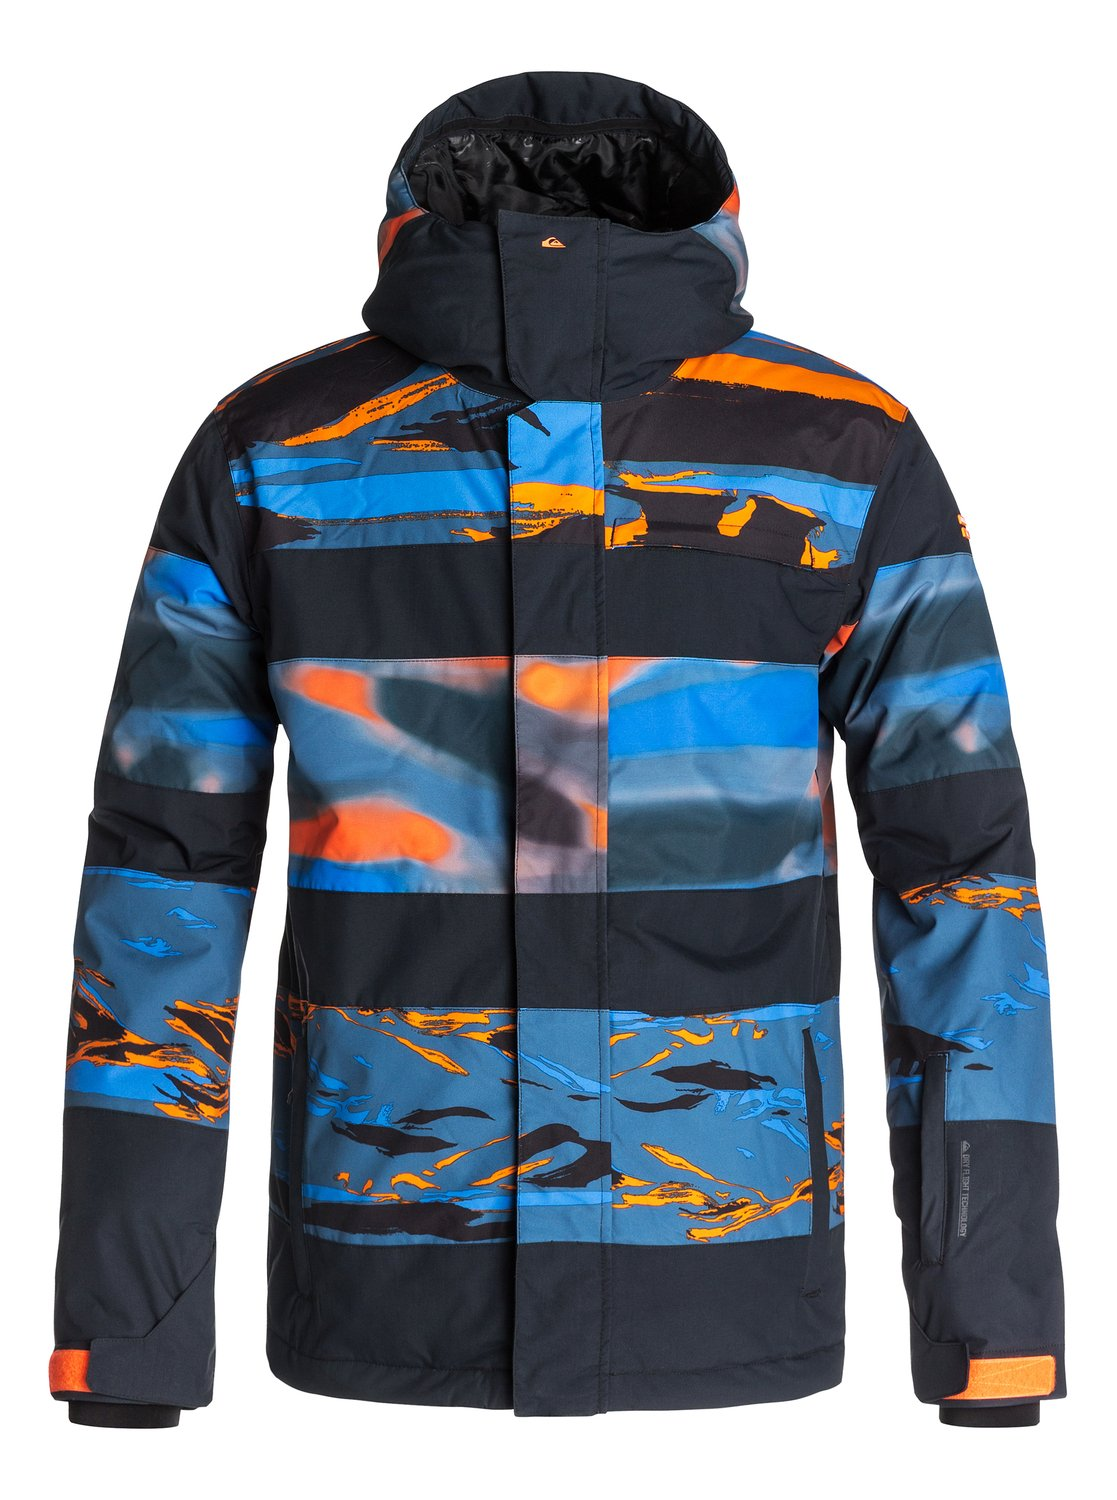 Fiction от Quiksilver RU